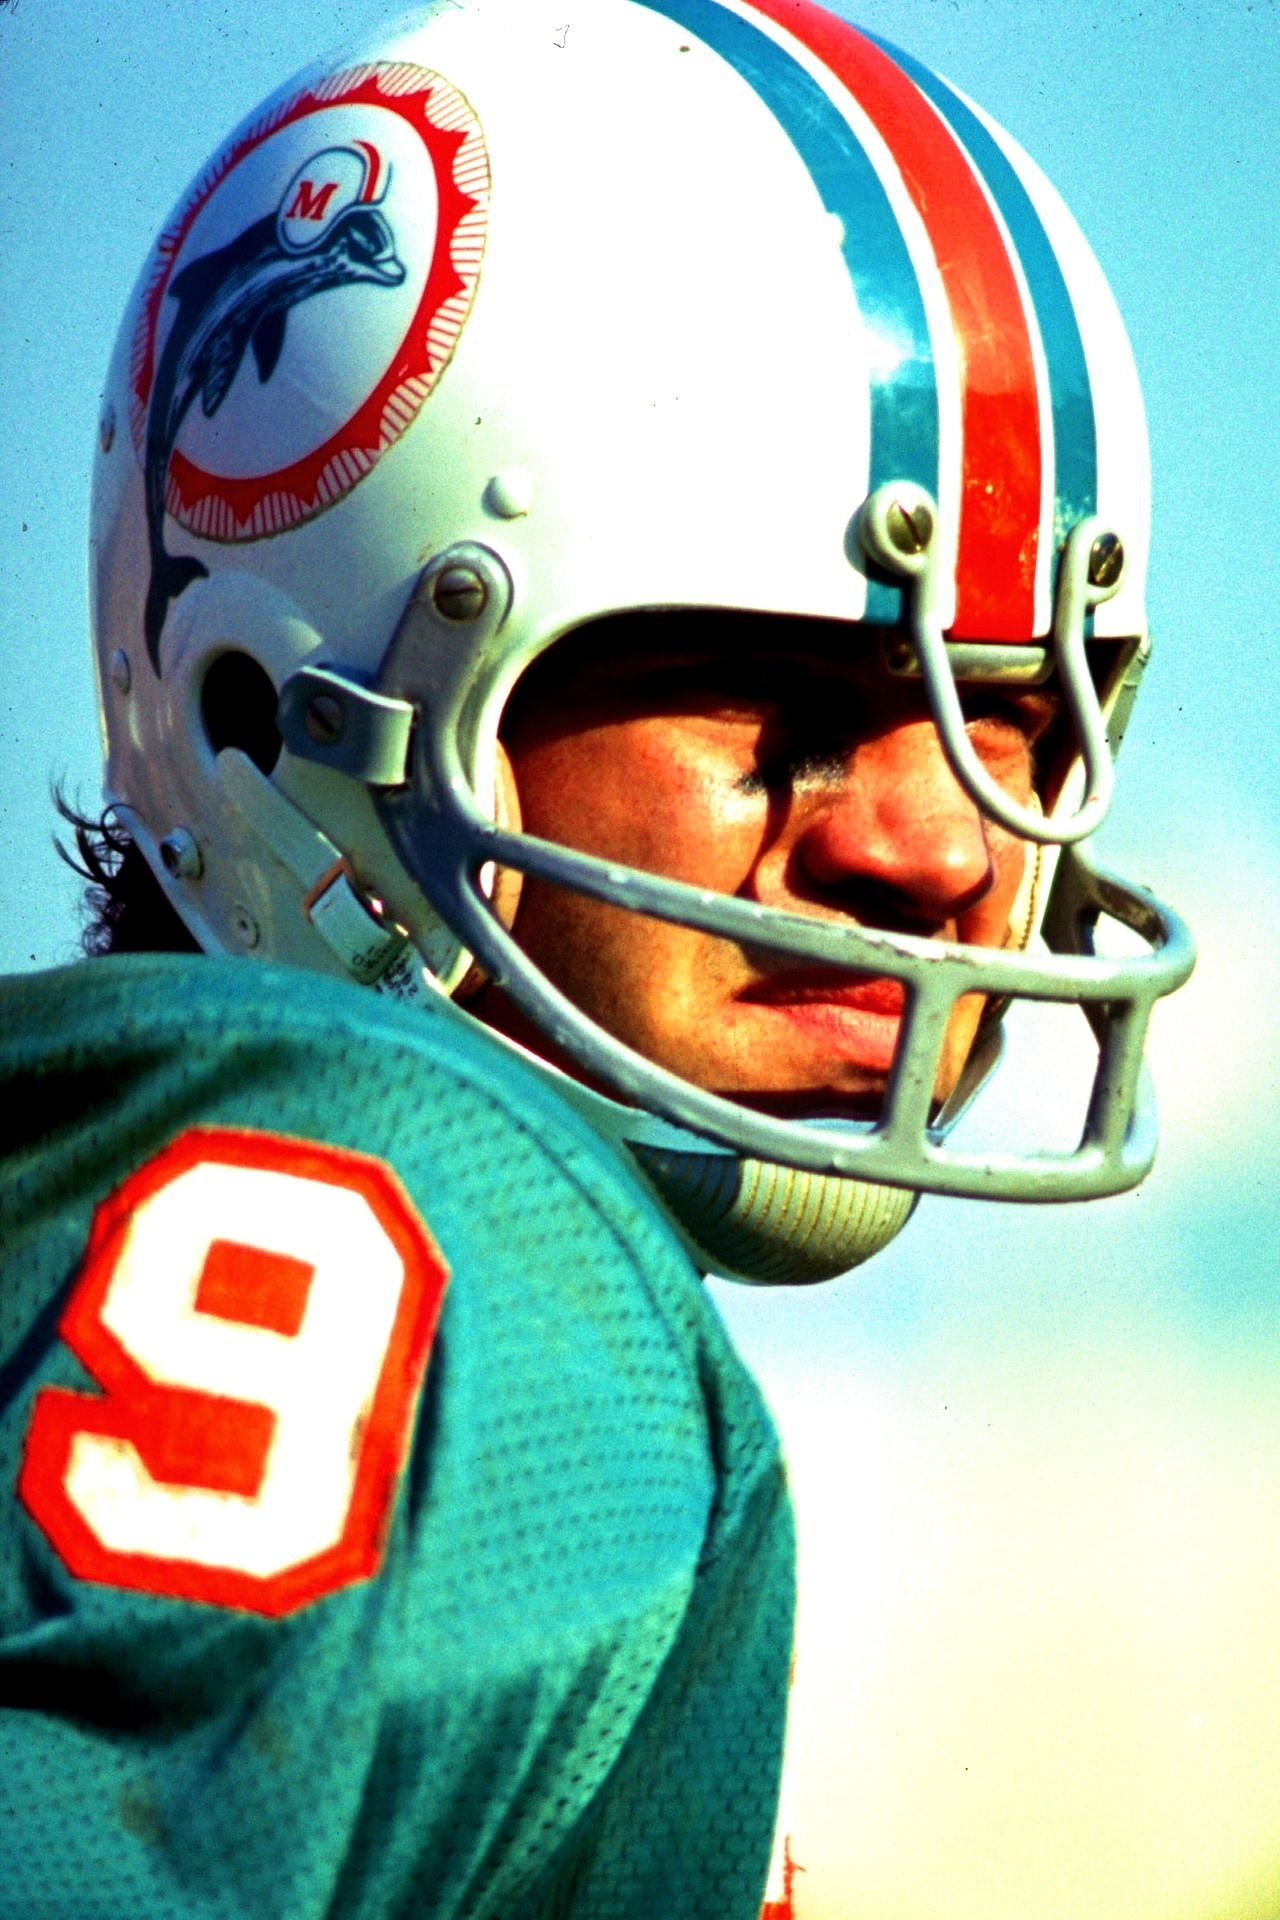 Larry Csonka, Running Back For The Miami Dolphins During The in Miami Dolphins 1972 Super Bowl Quarterback